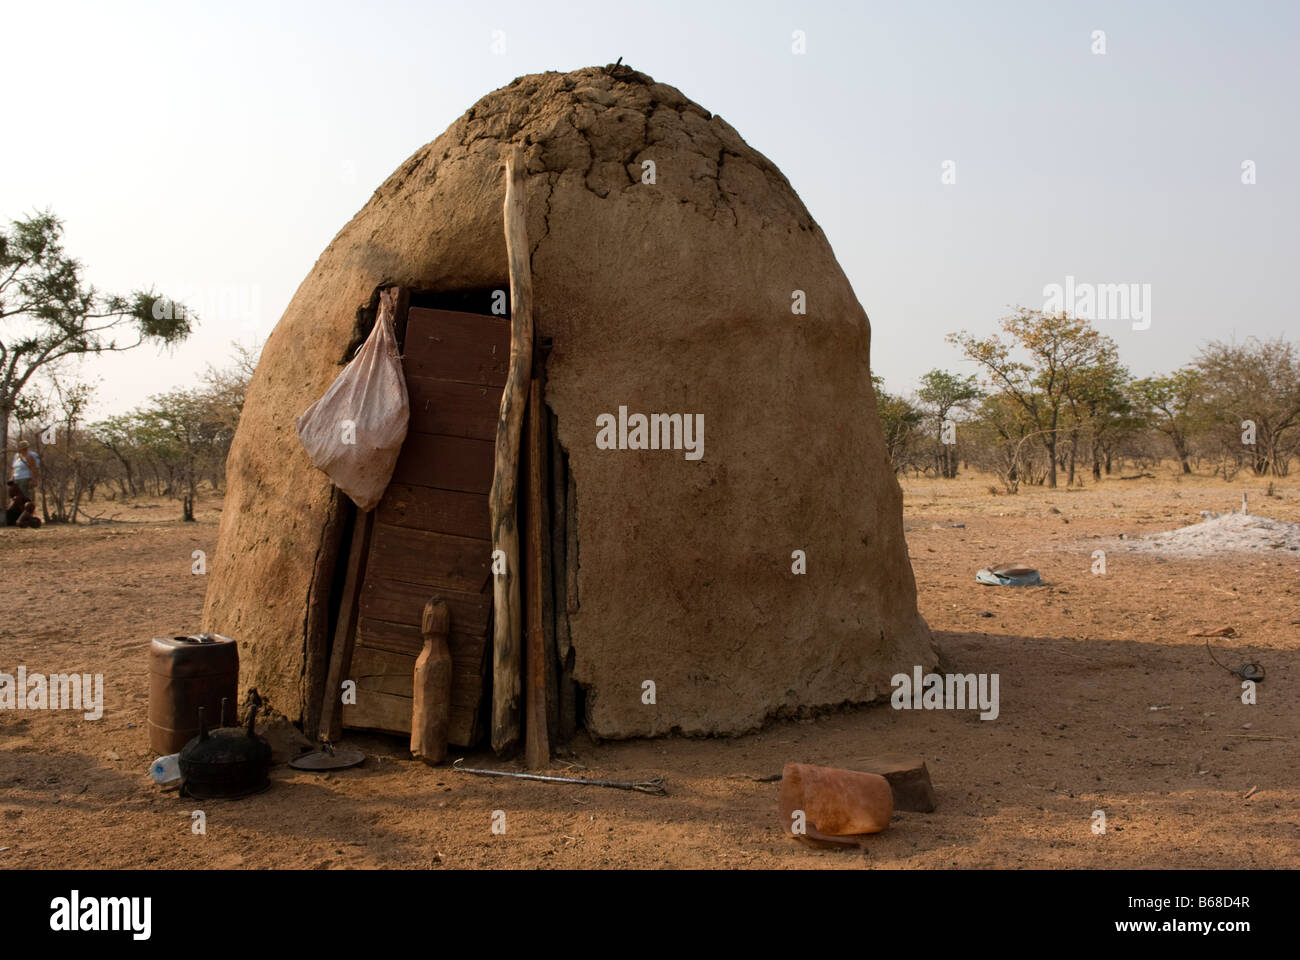 Traditional village huts built from mud and dung at the Himba Oase Village near Kamanjab Namibia Africa Stock Photo